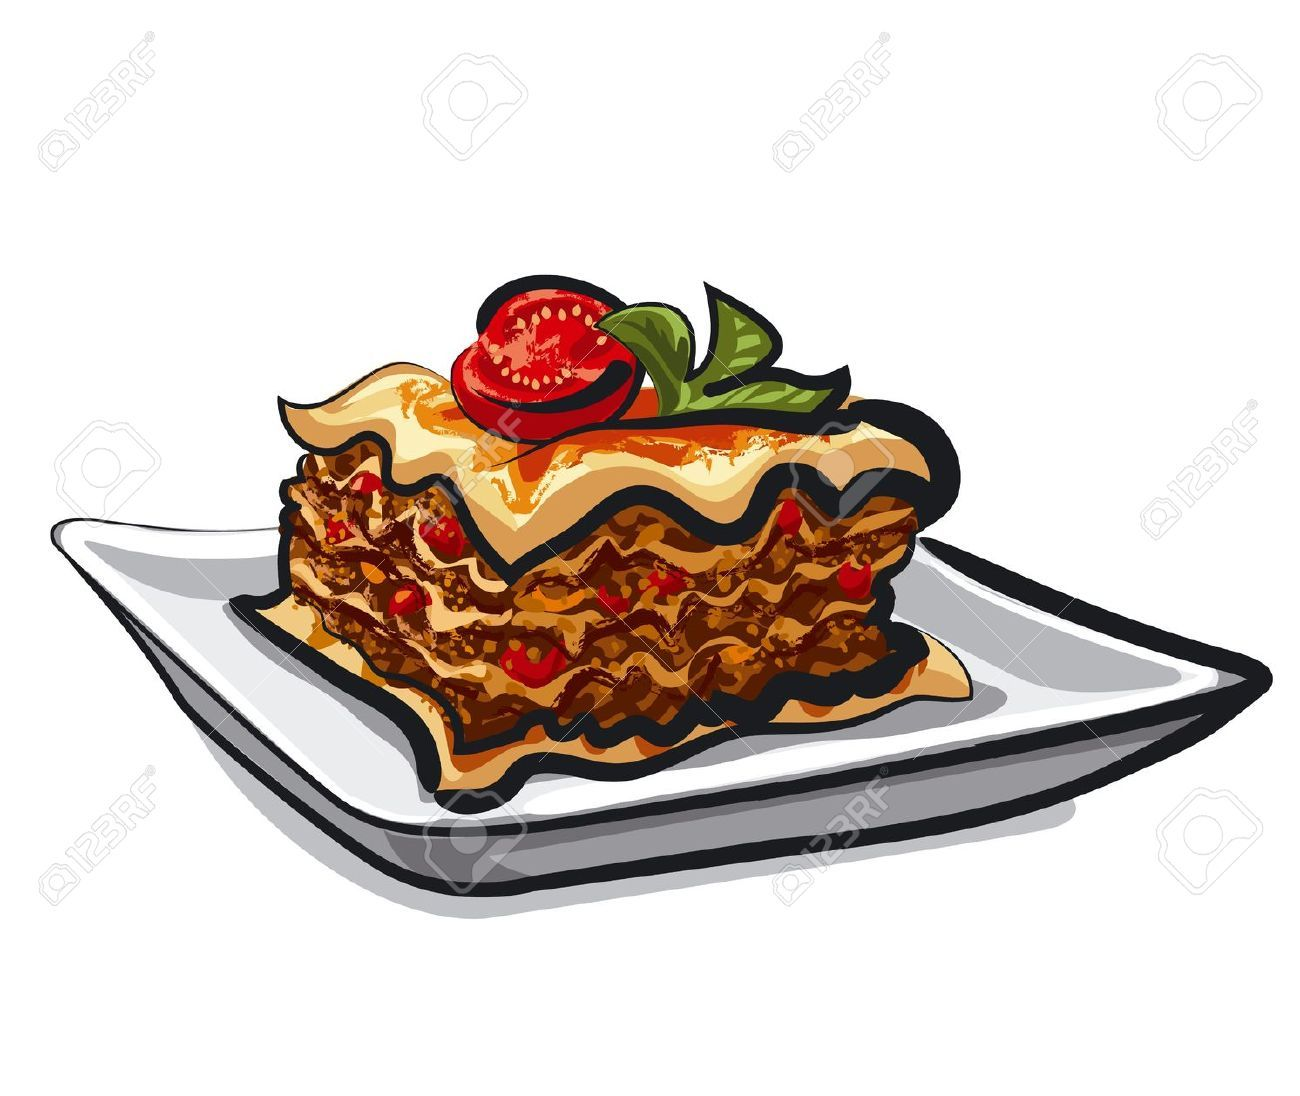 Lasagne clipart vector royalty free library Lasagne clipart 3 » Clipart Portal vector royalty free library